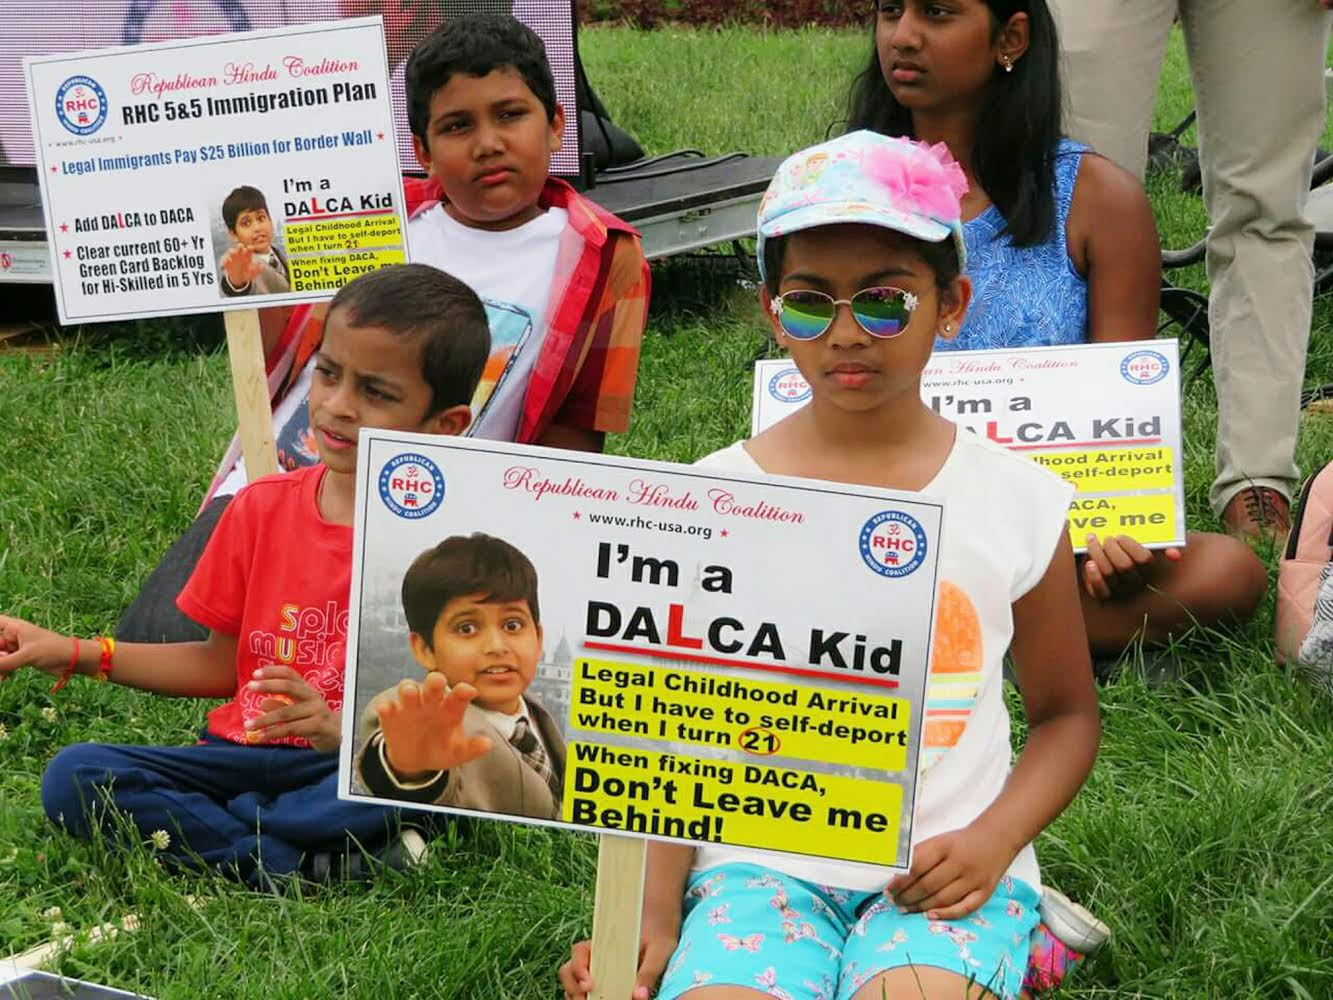 An Indian DALCA kid holds a sign at an immigration rally on Capitol Hill asking US lawmakers to include protections for legal Dreamers in any immigration reform legislation